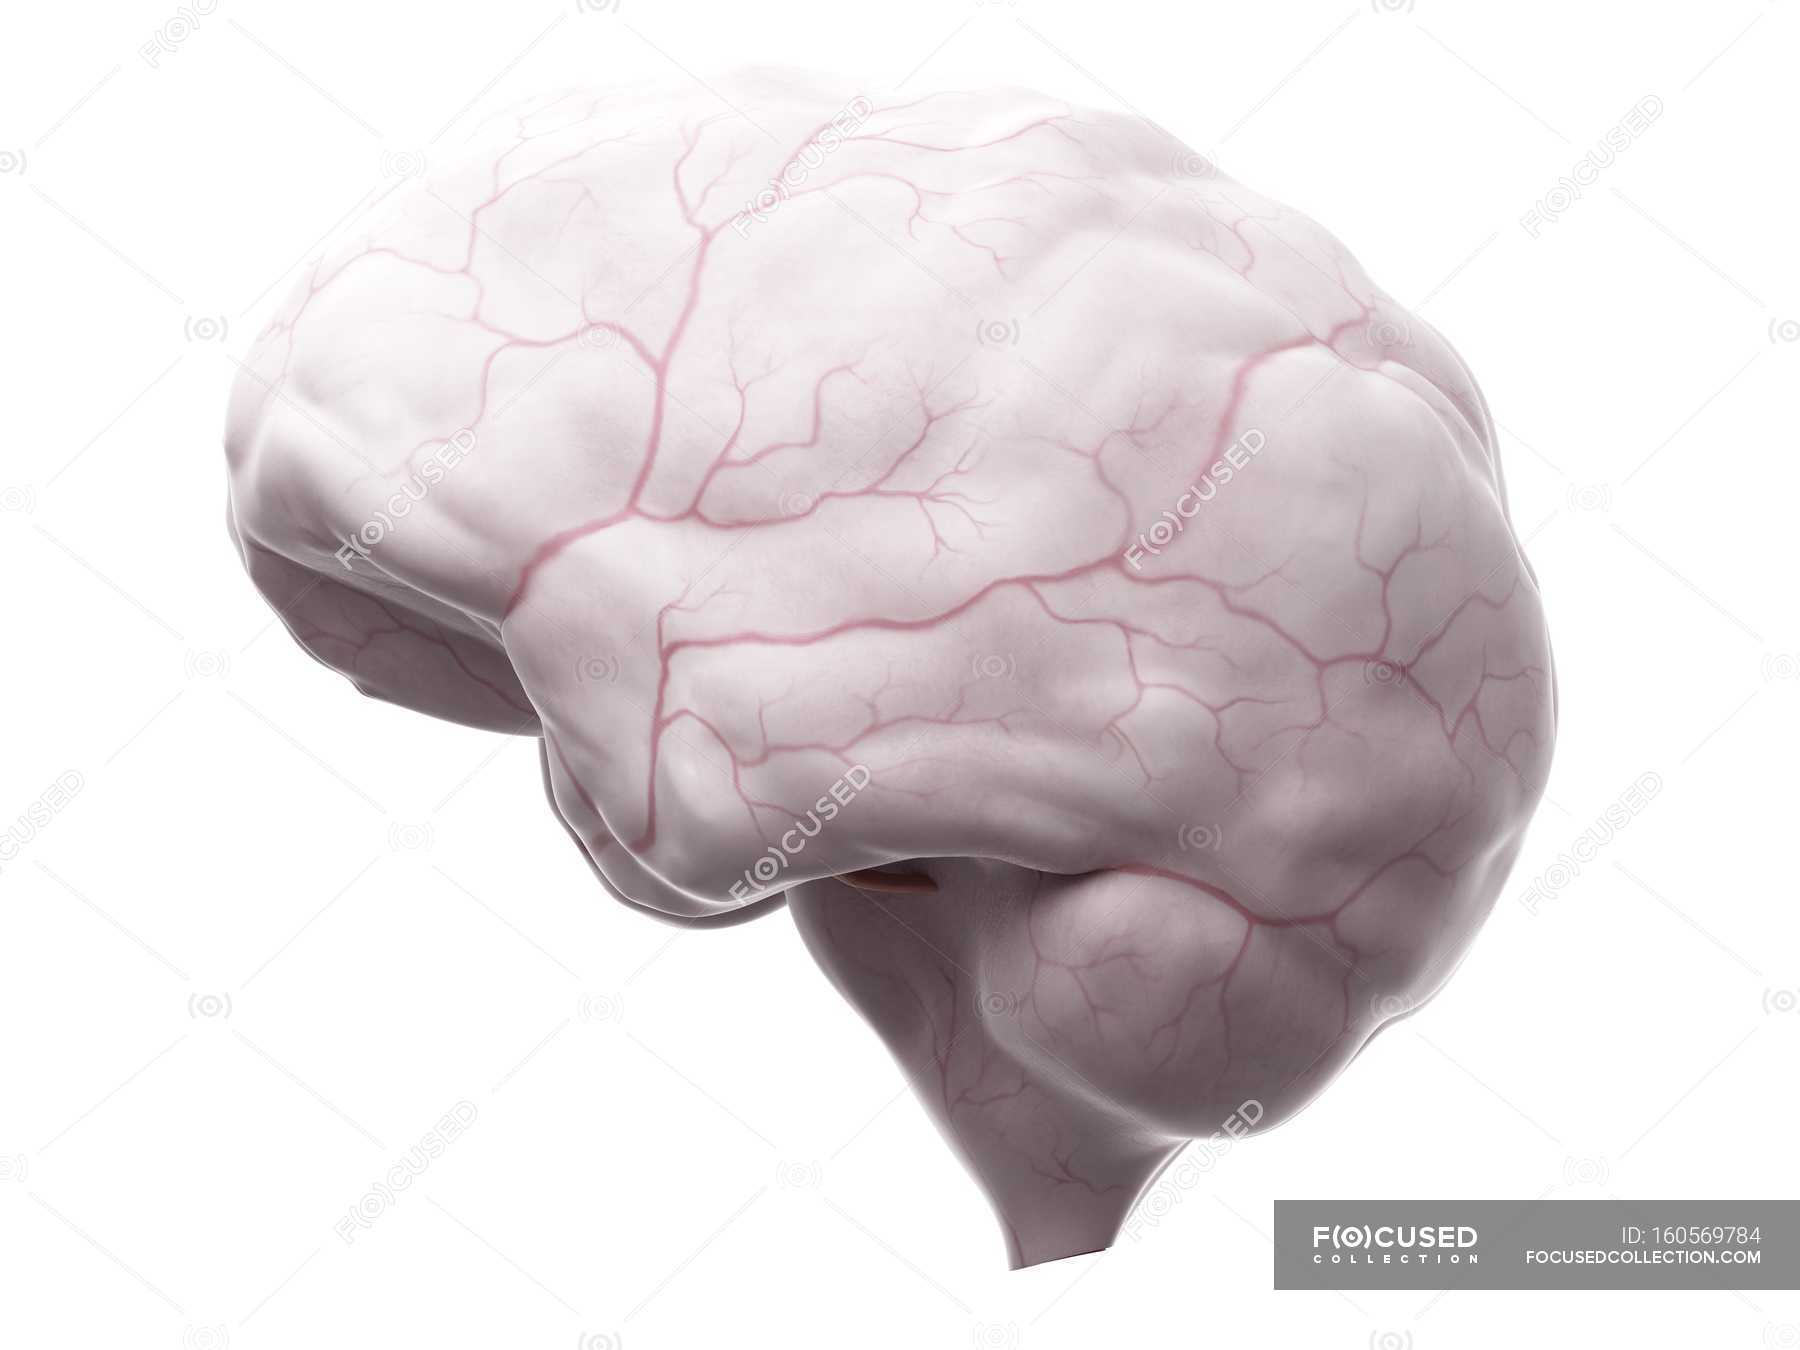 Brain anatomy showing blood supply system — Stock Photo | #160569784